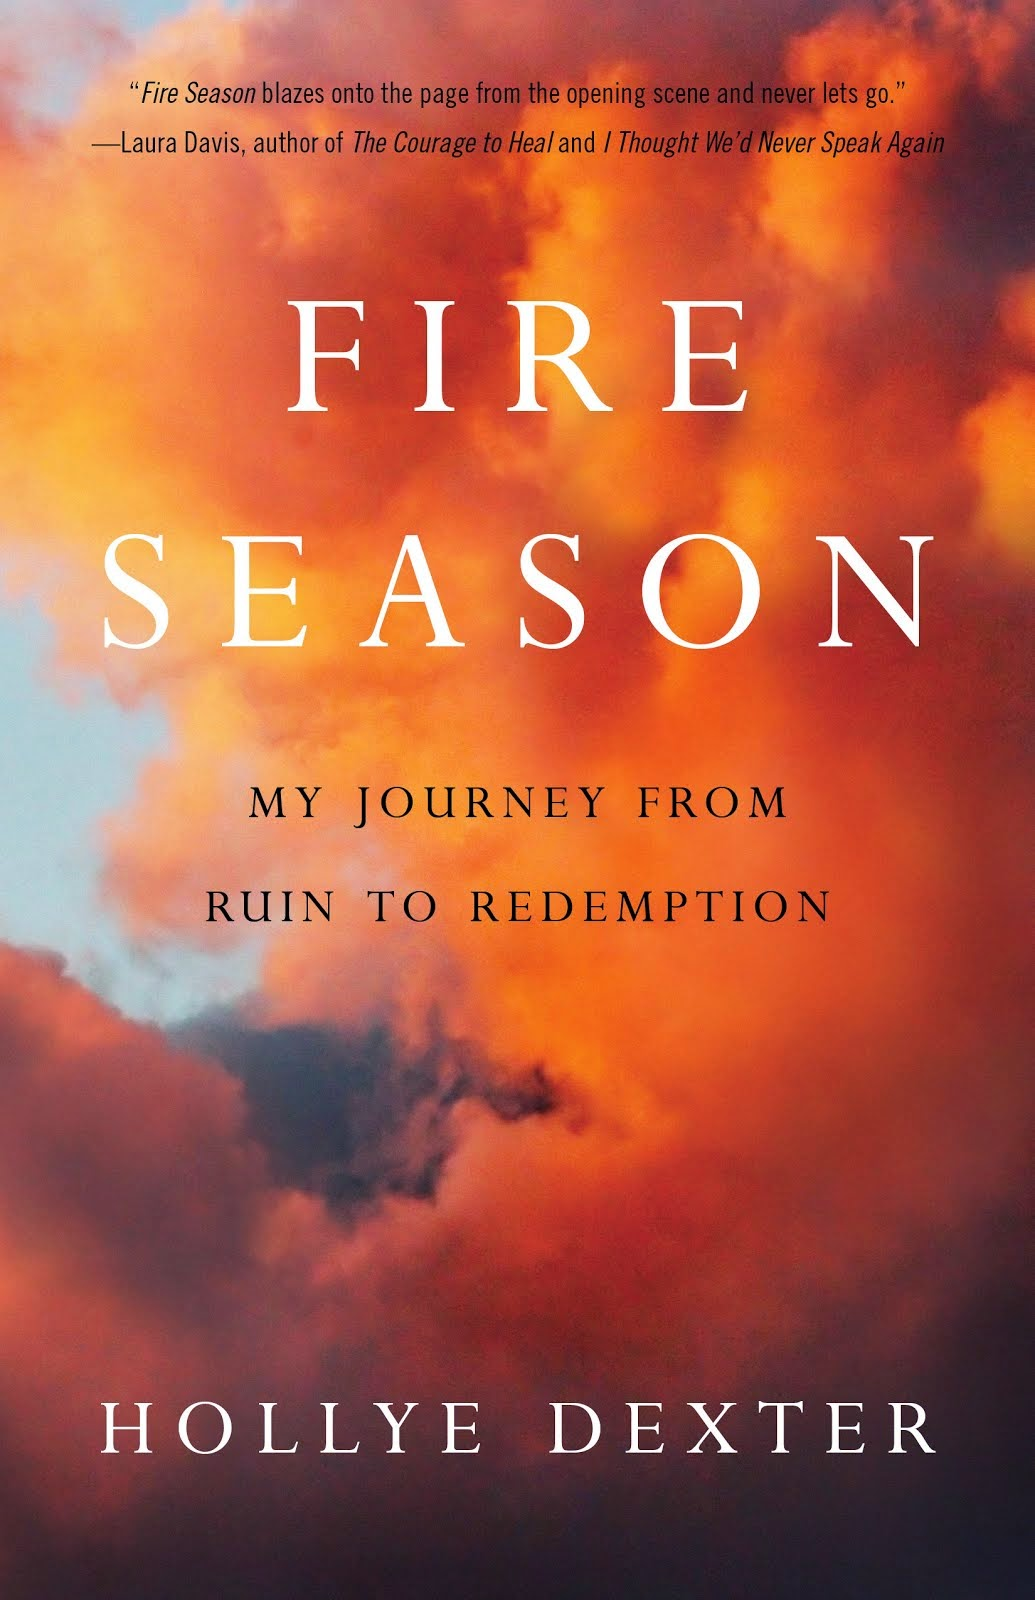 My new memoir FIRE SEASON is now available!